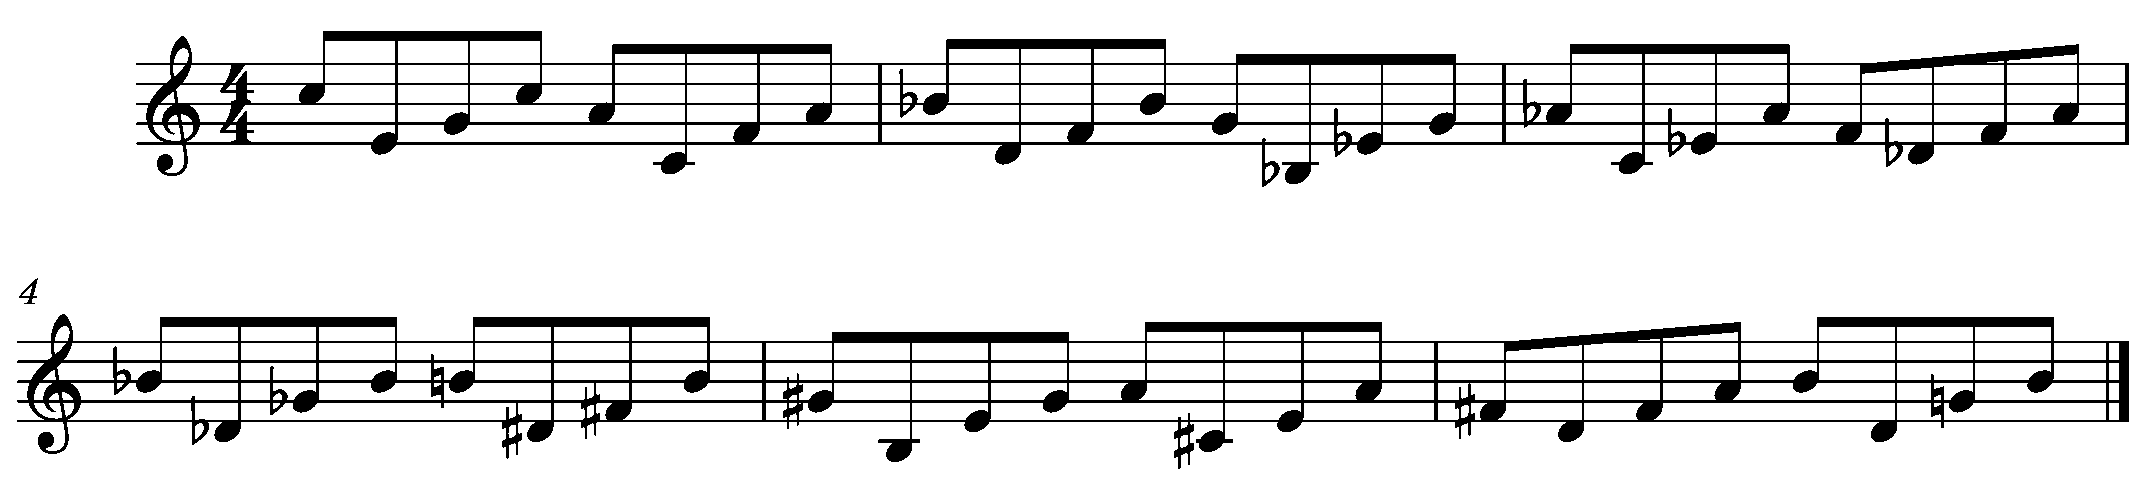 Ex. 4 Triads Pivoting Within a Major 10th